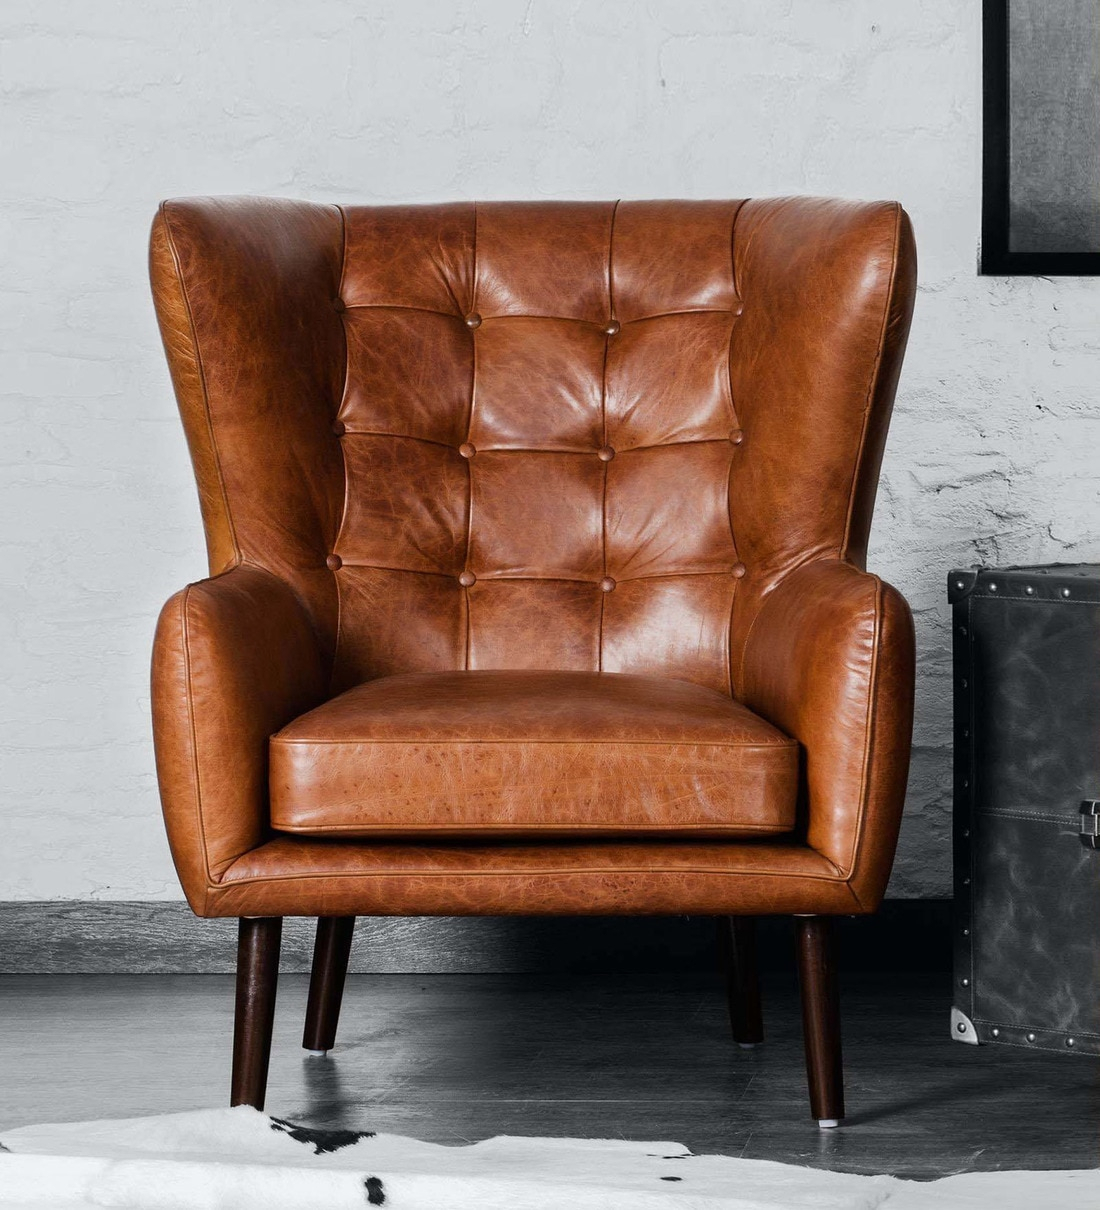 Dorchester Wing Chair In Vintage Brown Colour Pertaining To Dorcaster Barrel Chairs (View 5 of 15)